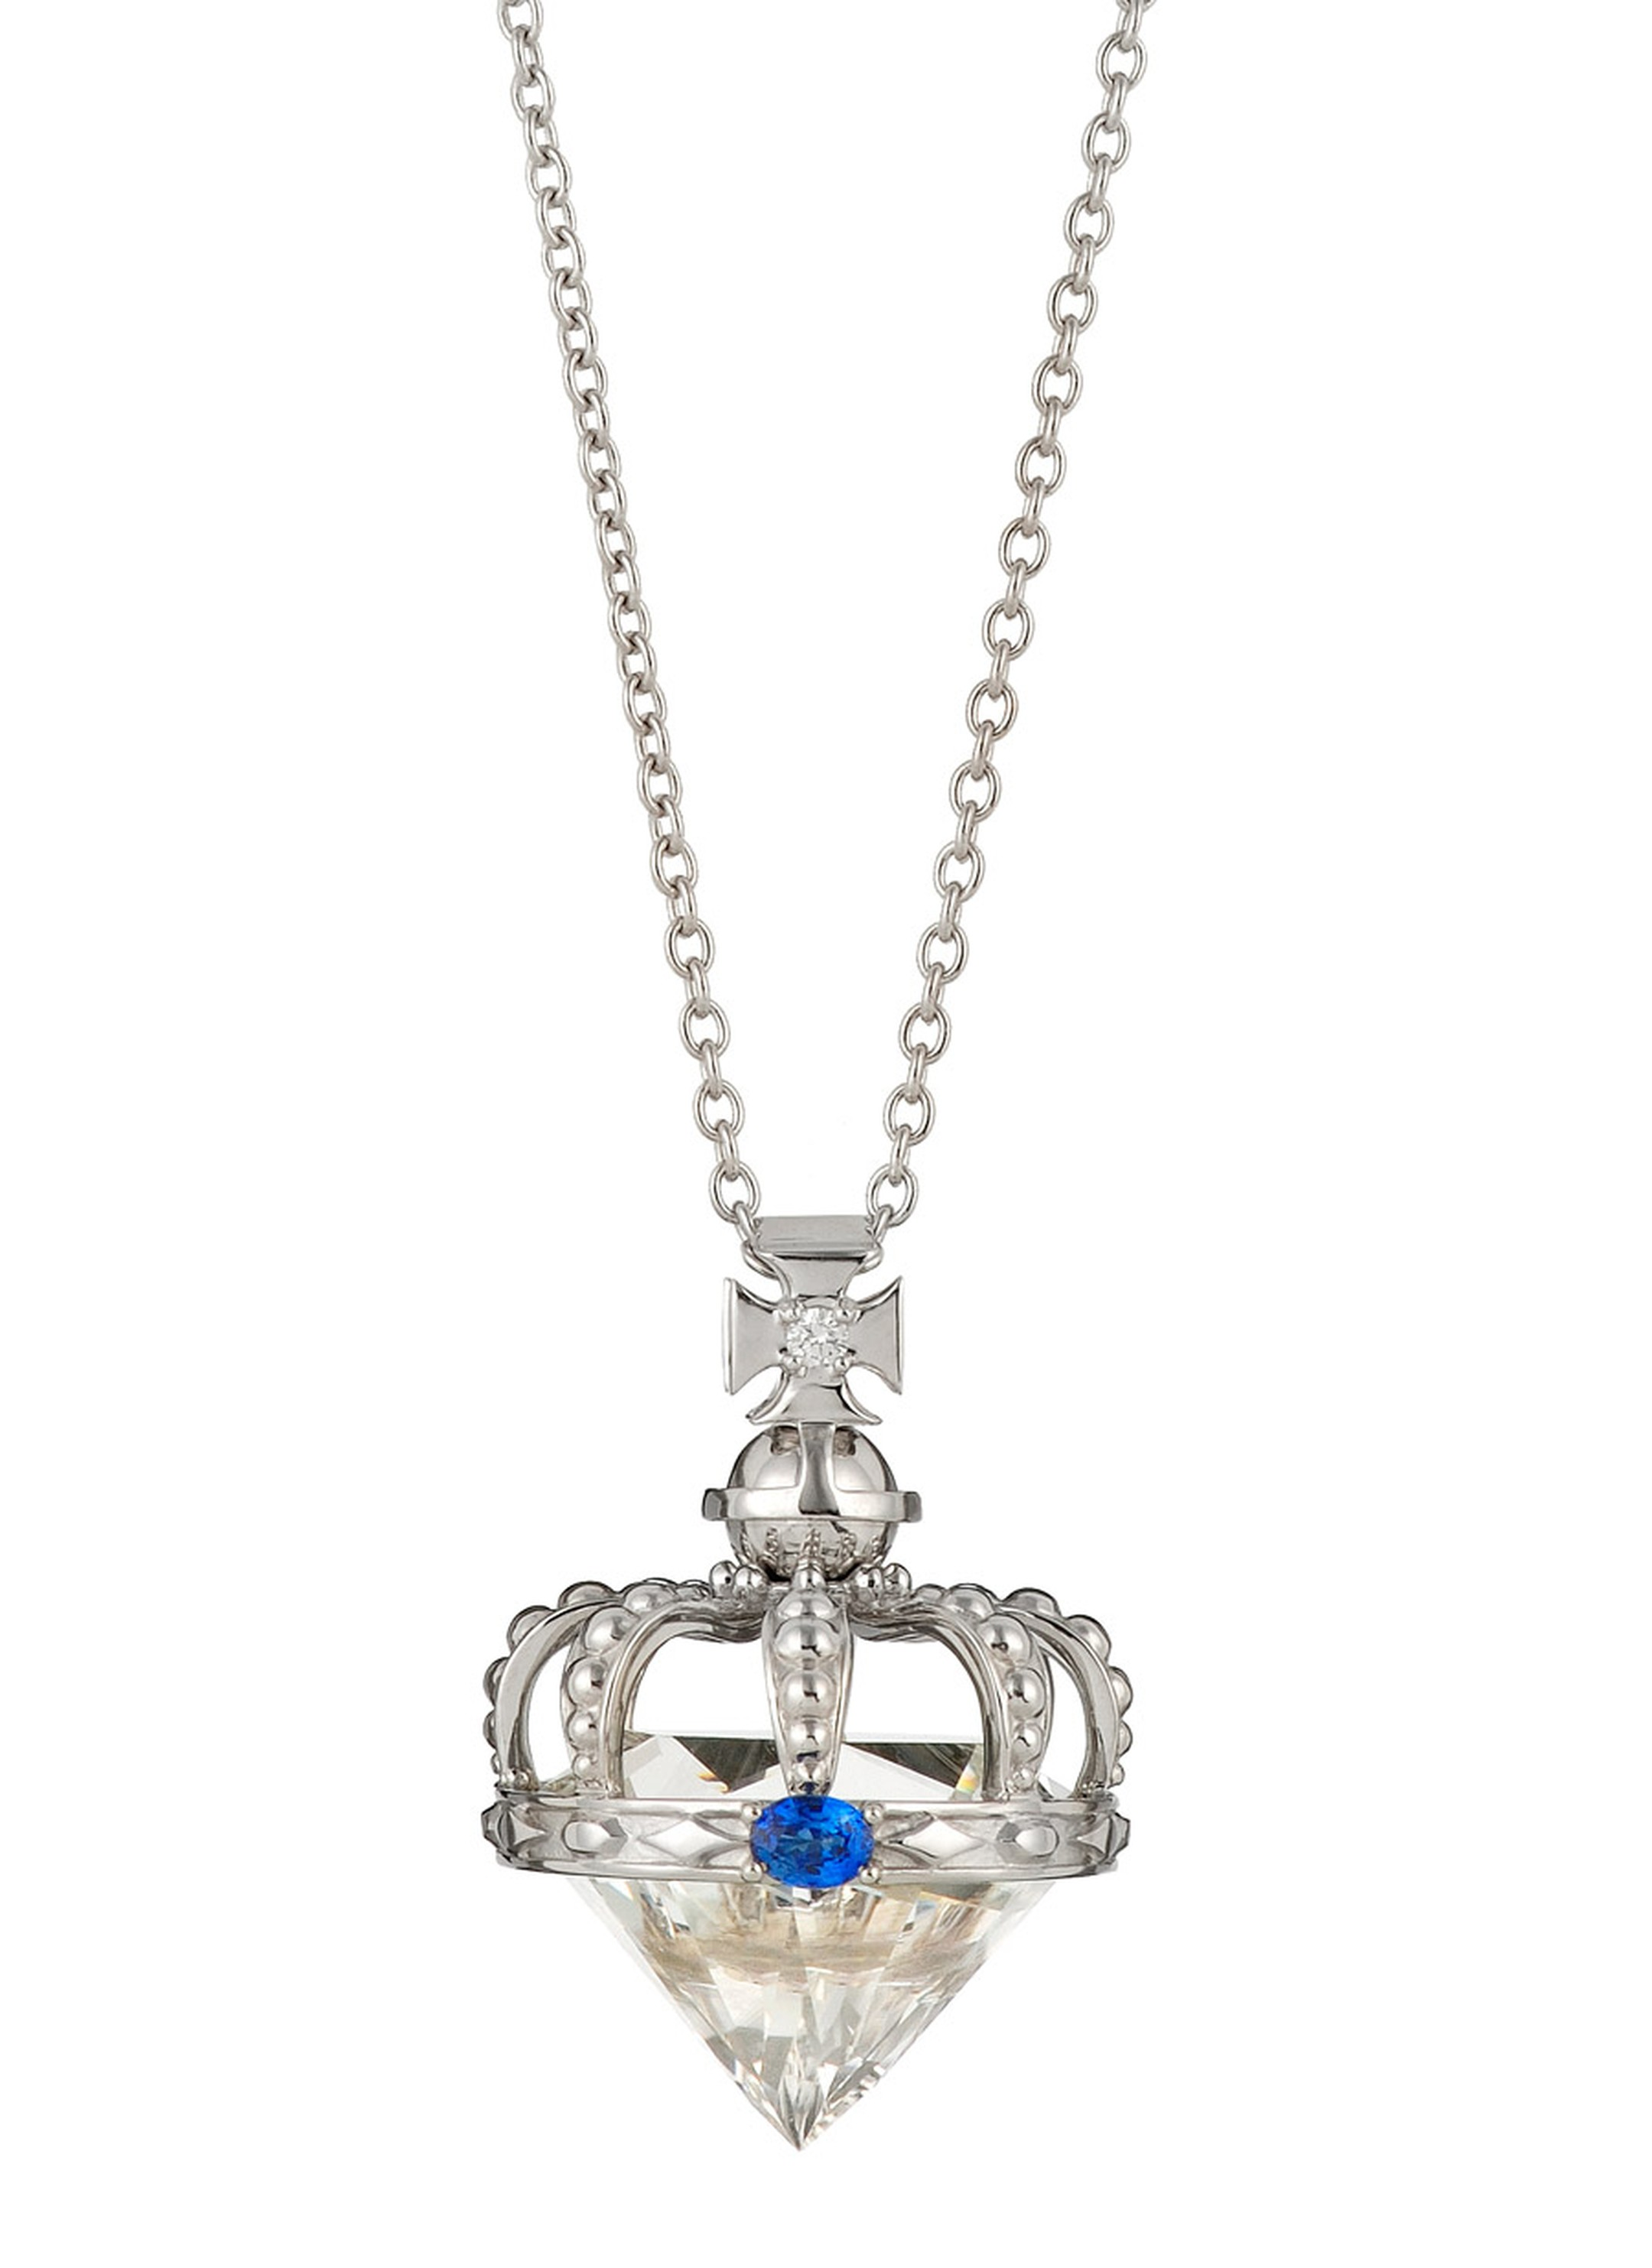 Stephen-Webster-Garrards-September-Jubilee-Pendant---Sapphire.jpg